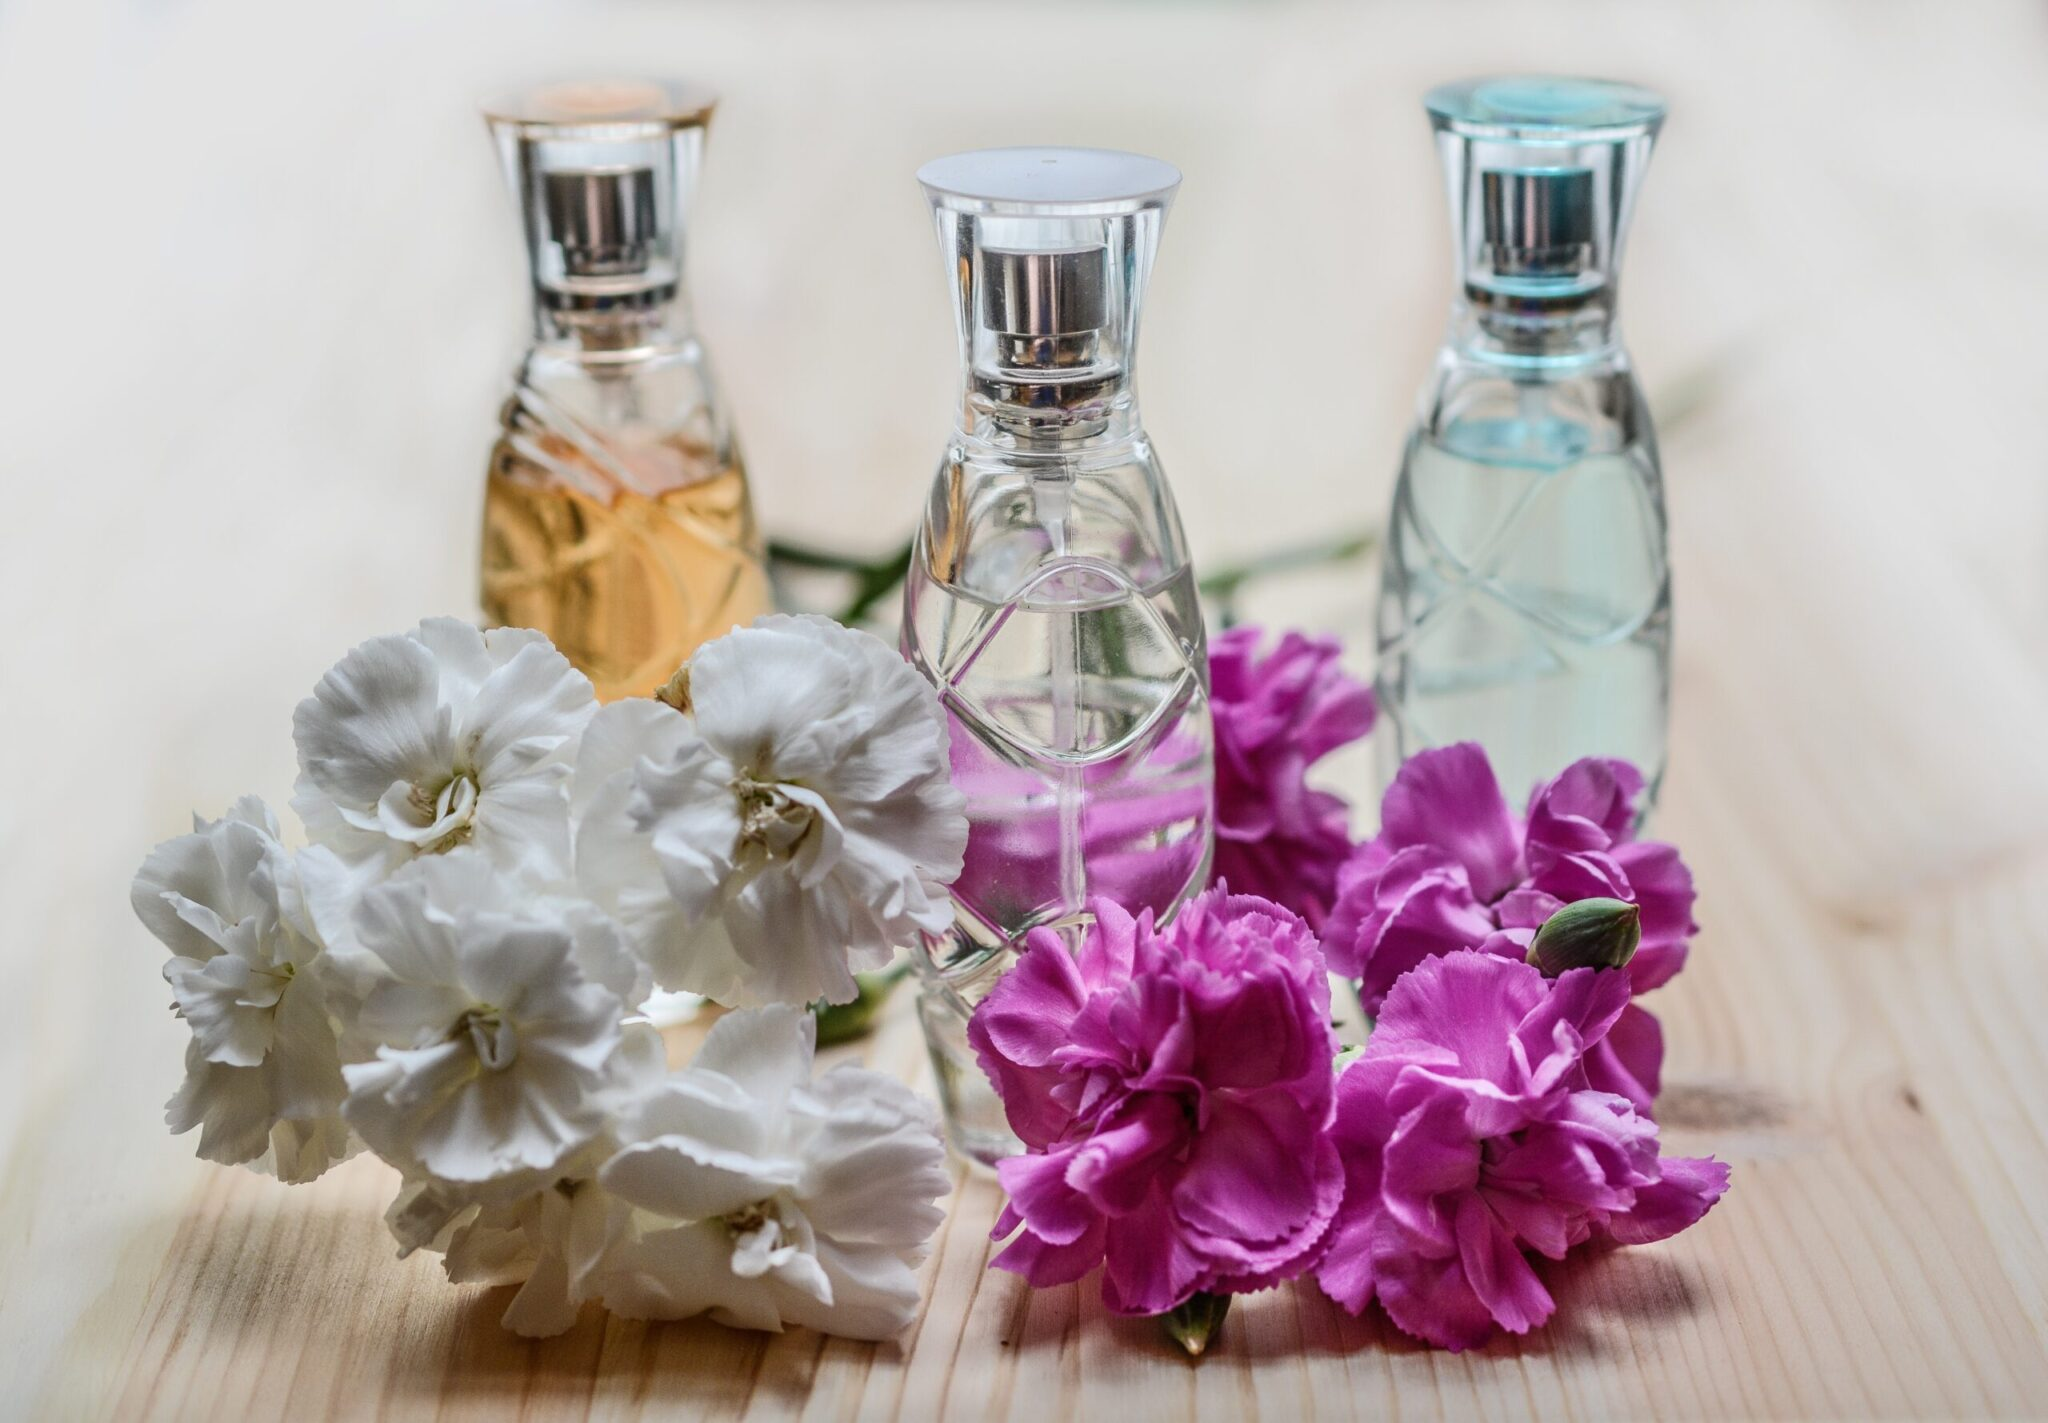 3 bottles of perfume surrounded by the fragence of several flowers to represent the 3 amazing benefits that will come with conscious living